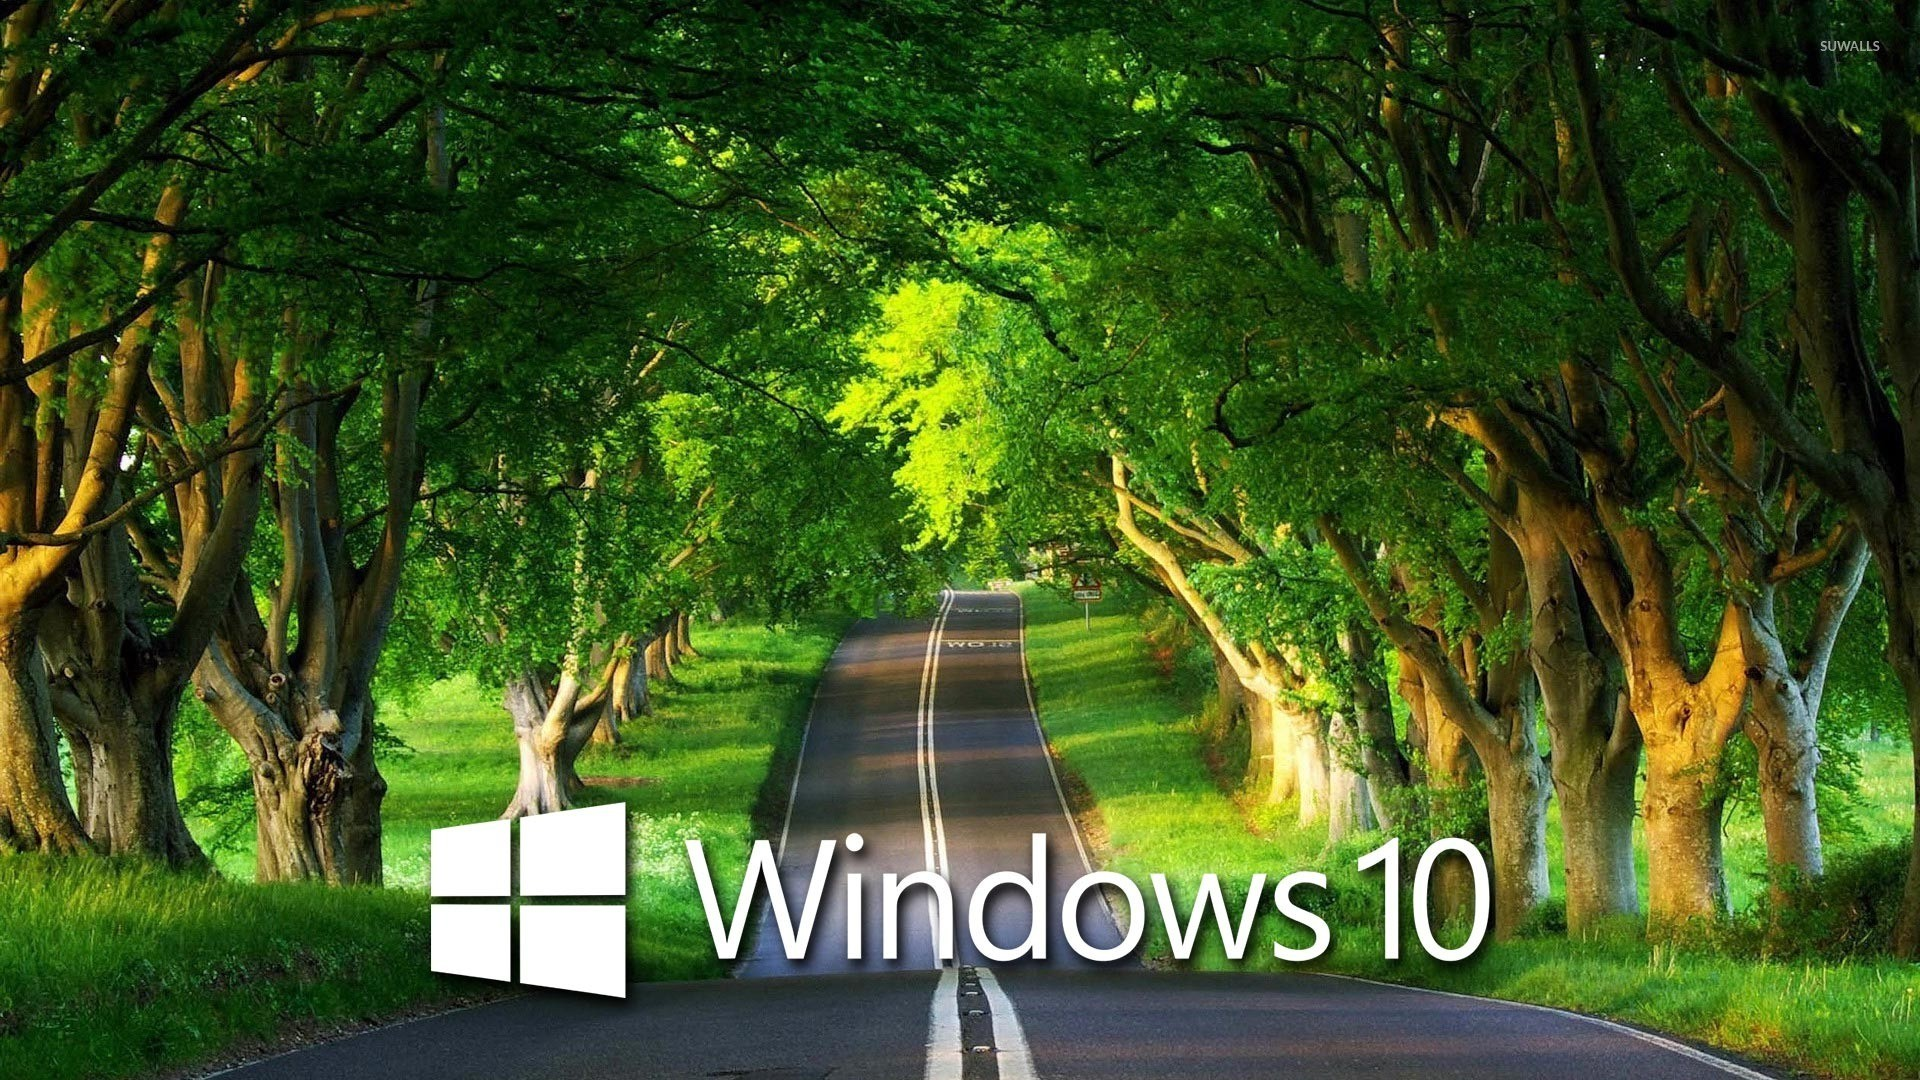 hd wallpapers for windows 10 1920x1080,natural landscape,nature,green,tree,natural environment